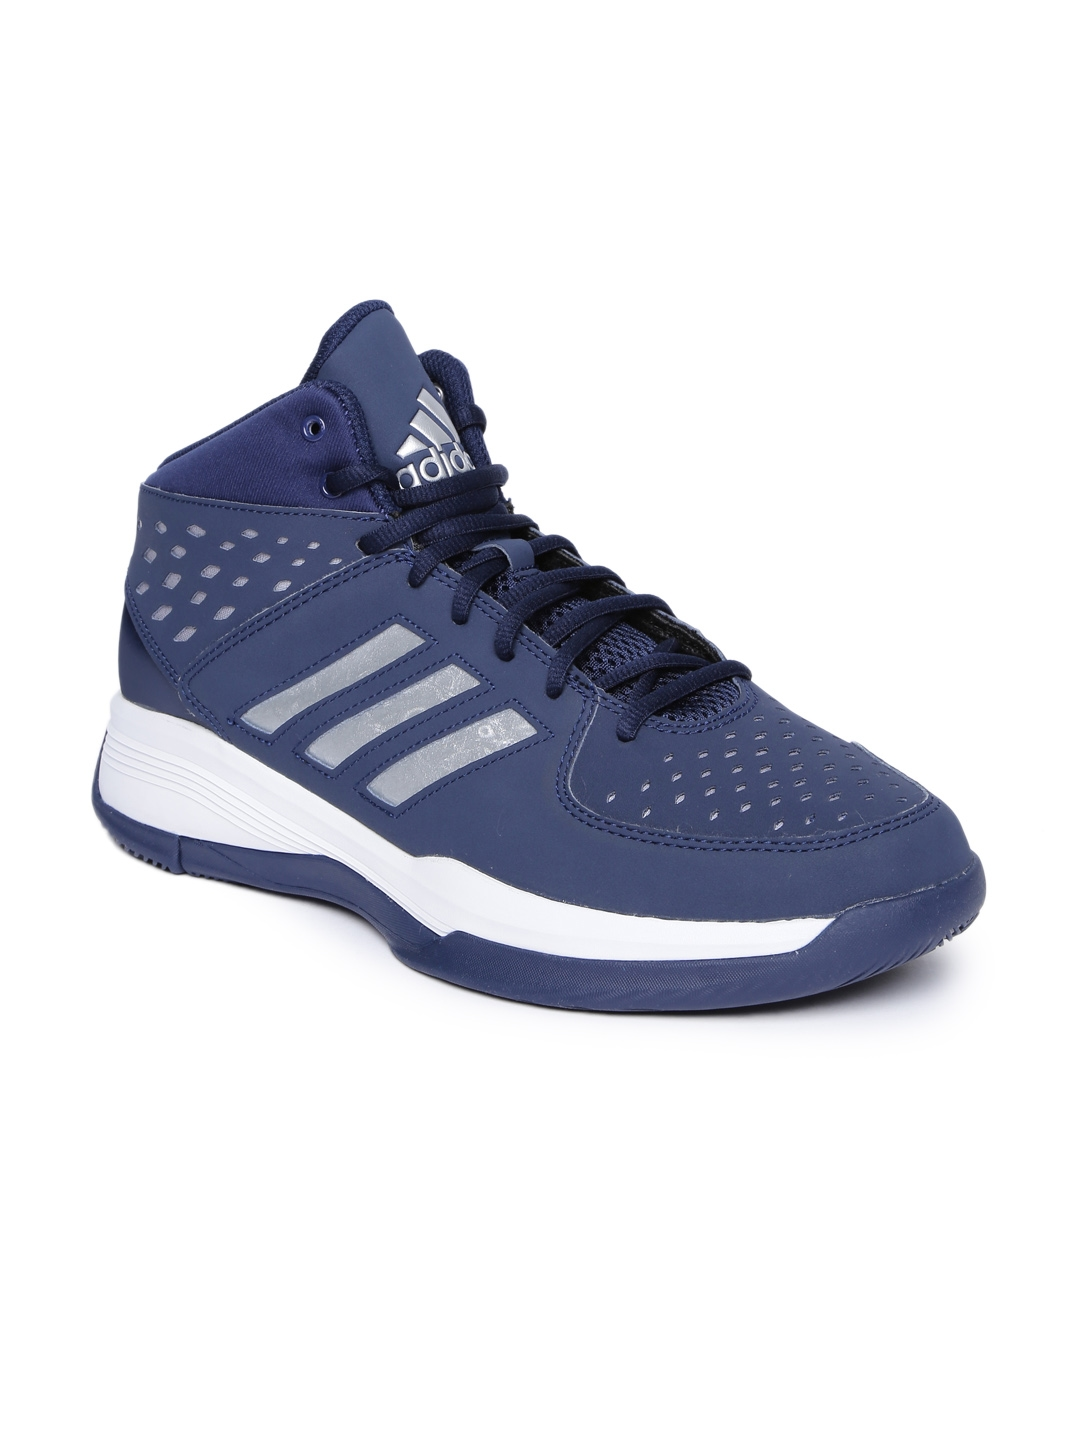 fd54c1aeded8 Buy ADIDAS Men Navy COURT FURY Mid Top Basketball Shoes - Sports ...